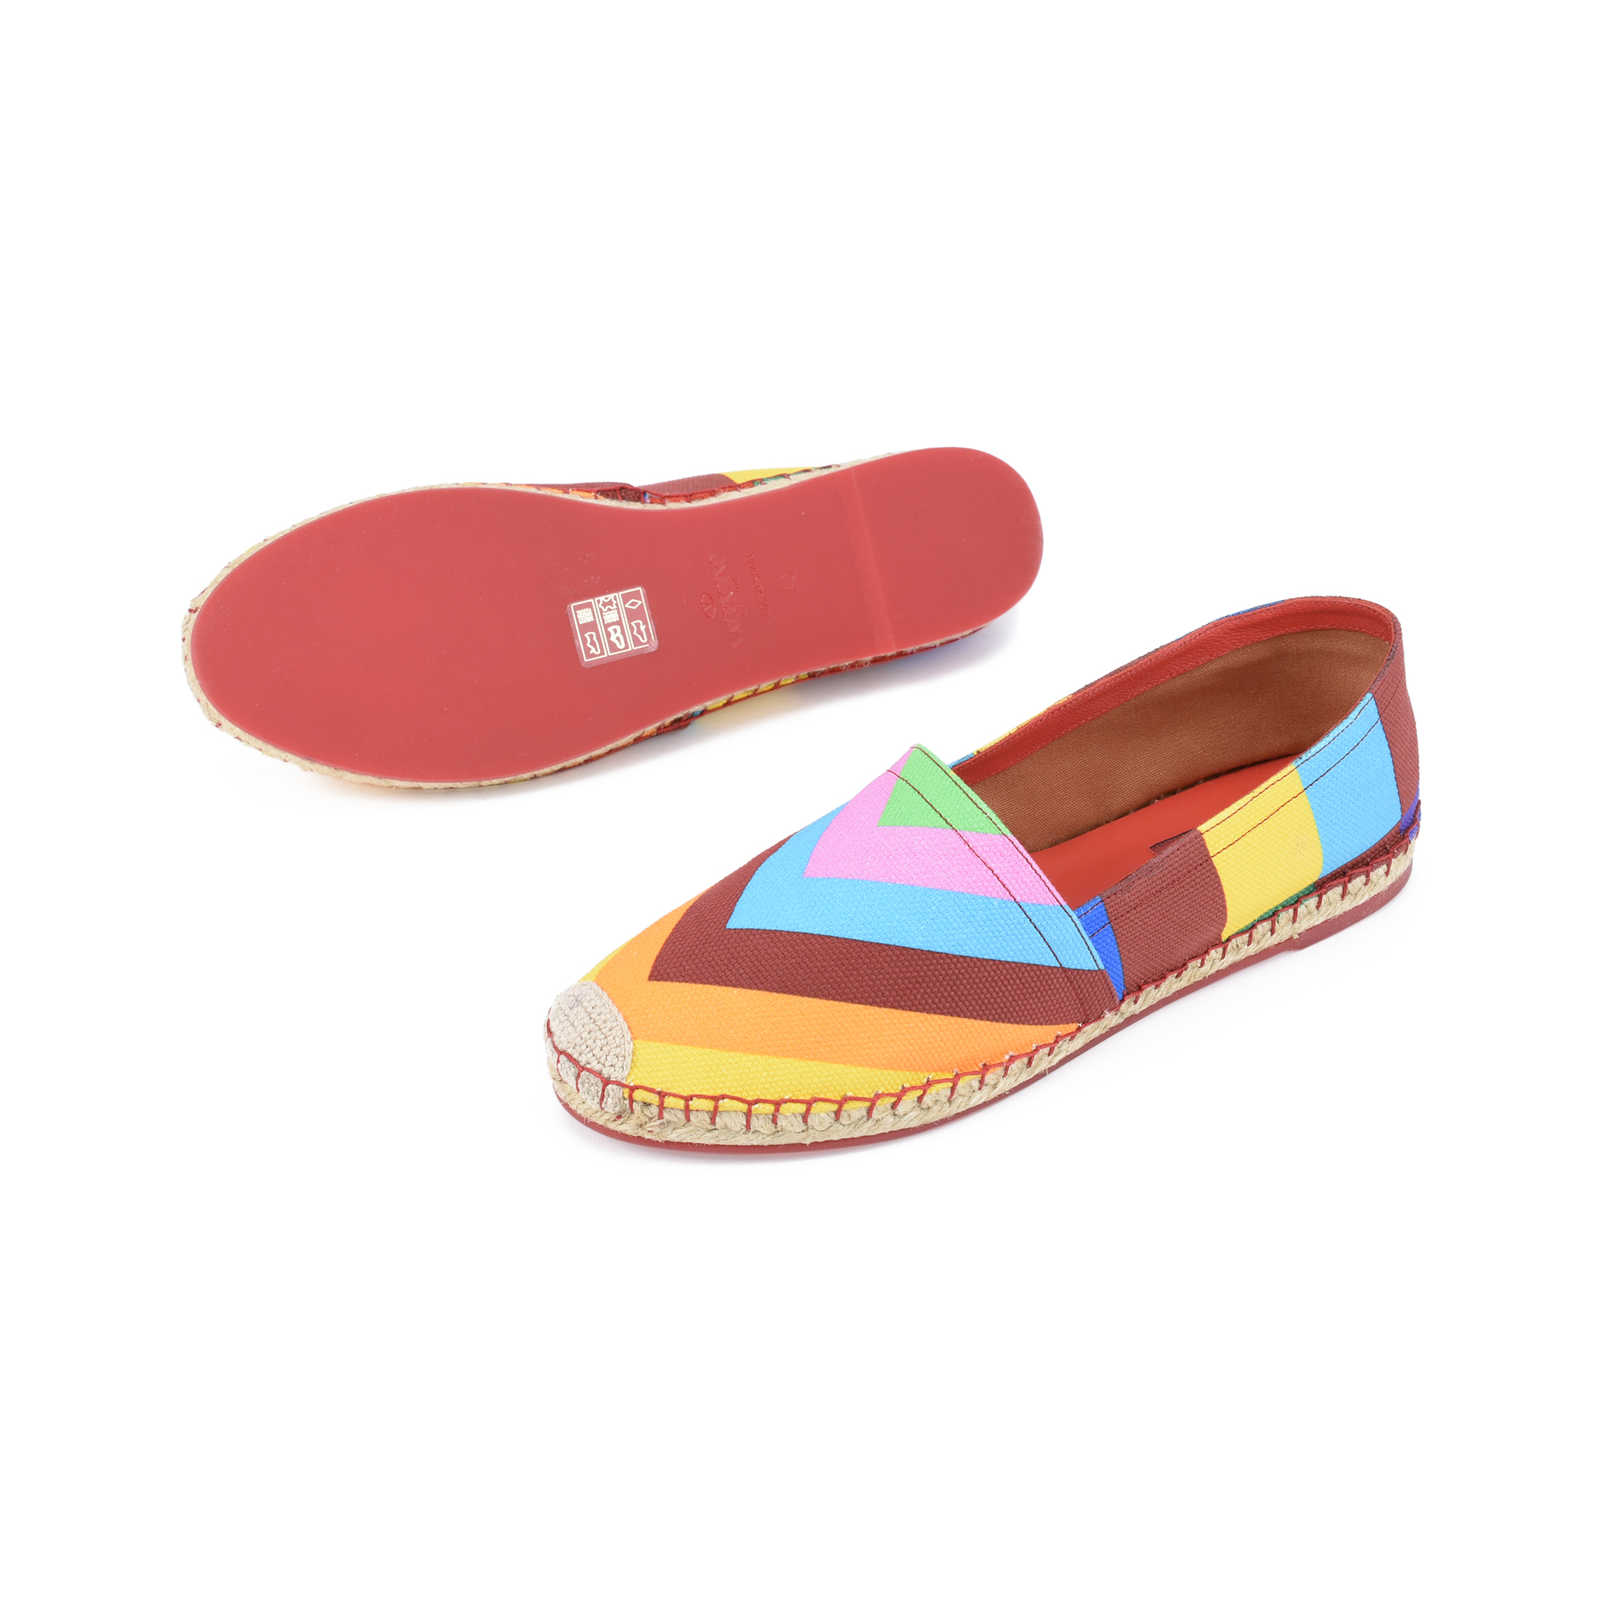 Valentino 1973 Canvas Espadrilles Sale Browse 6L5z6gr